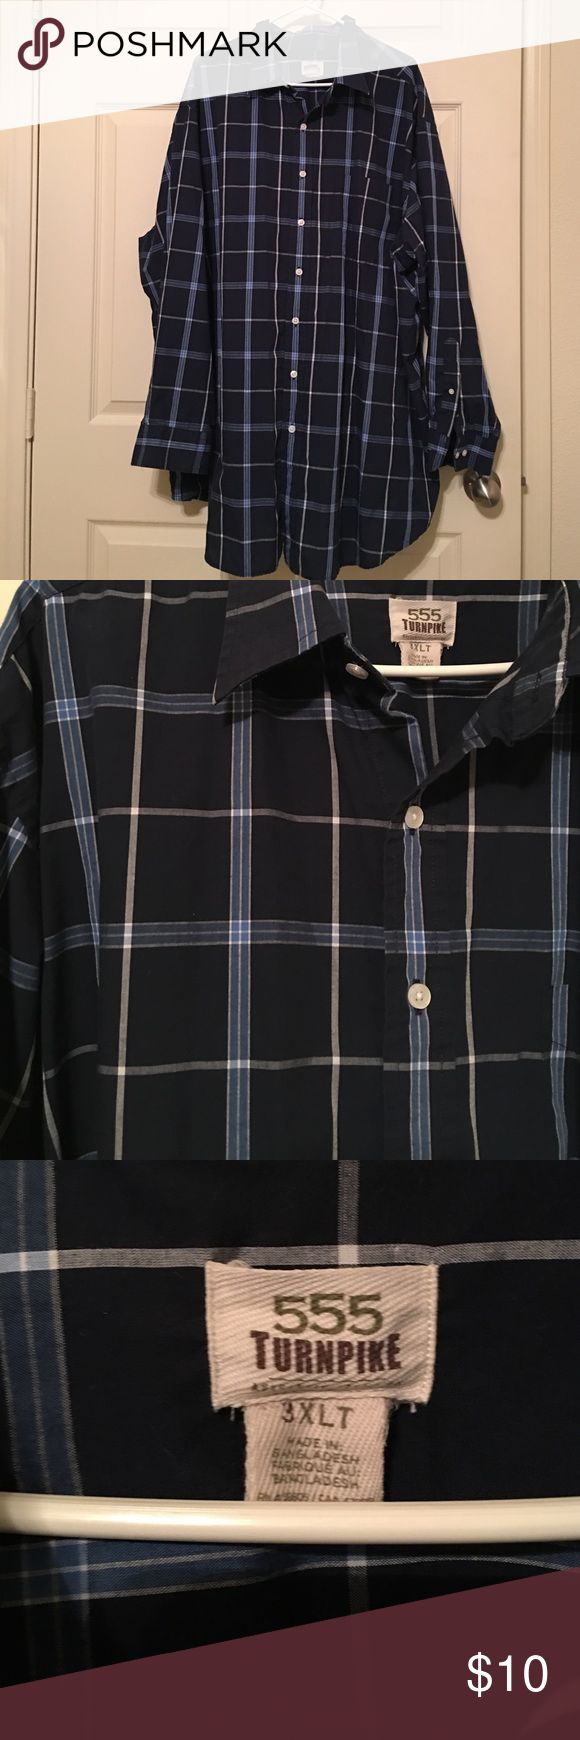 Men's 3XLT big and tall dress shirt Men's 3XLT navy blue dress shirt with light blue and white stripes throughout. Worn once, excellent condition! 555 Turnpike Shirts Polos